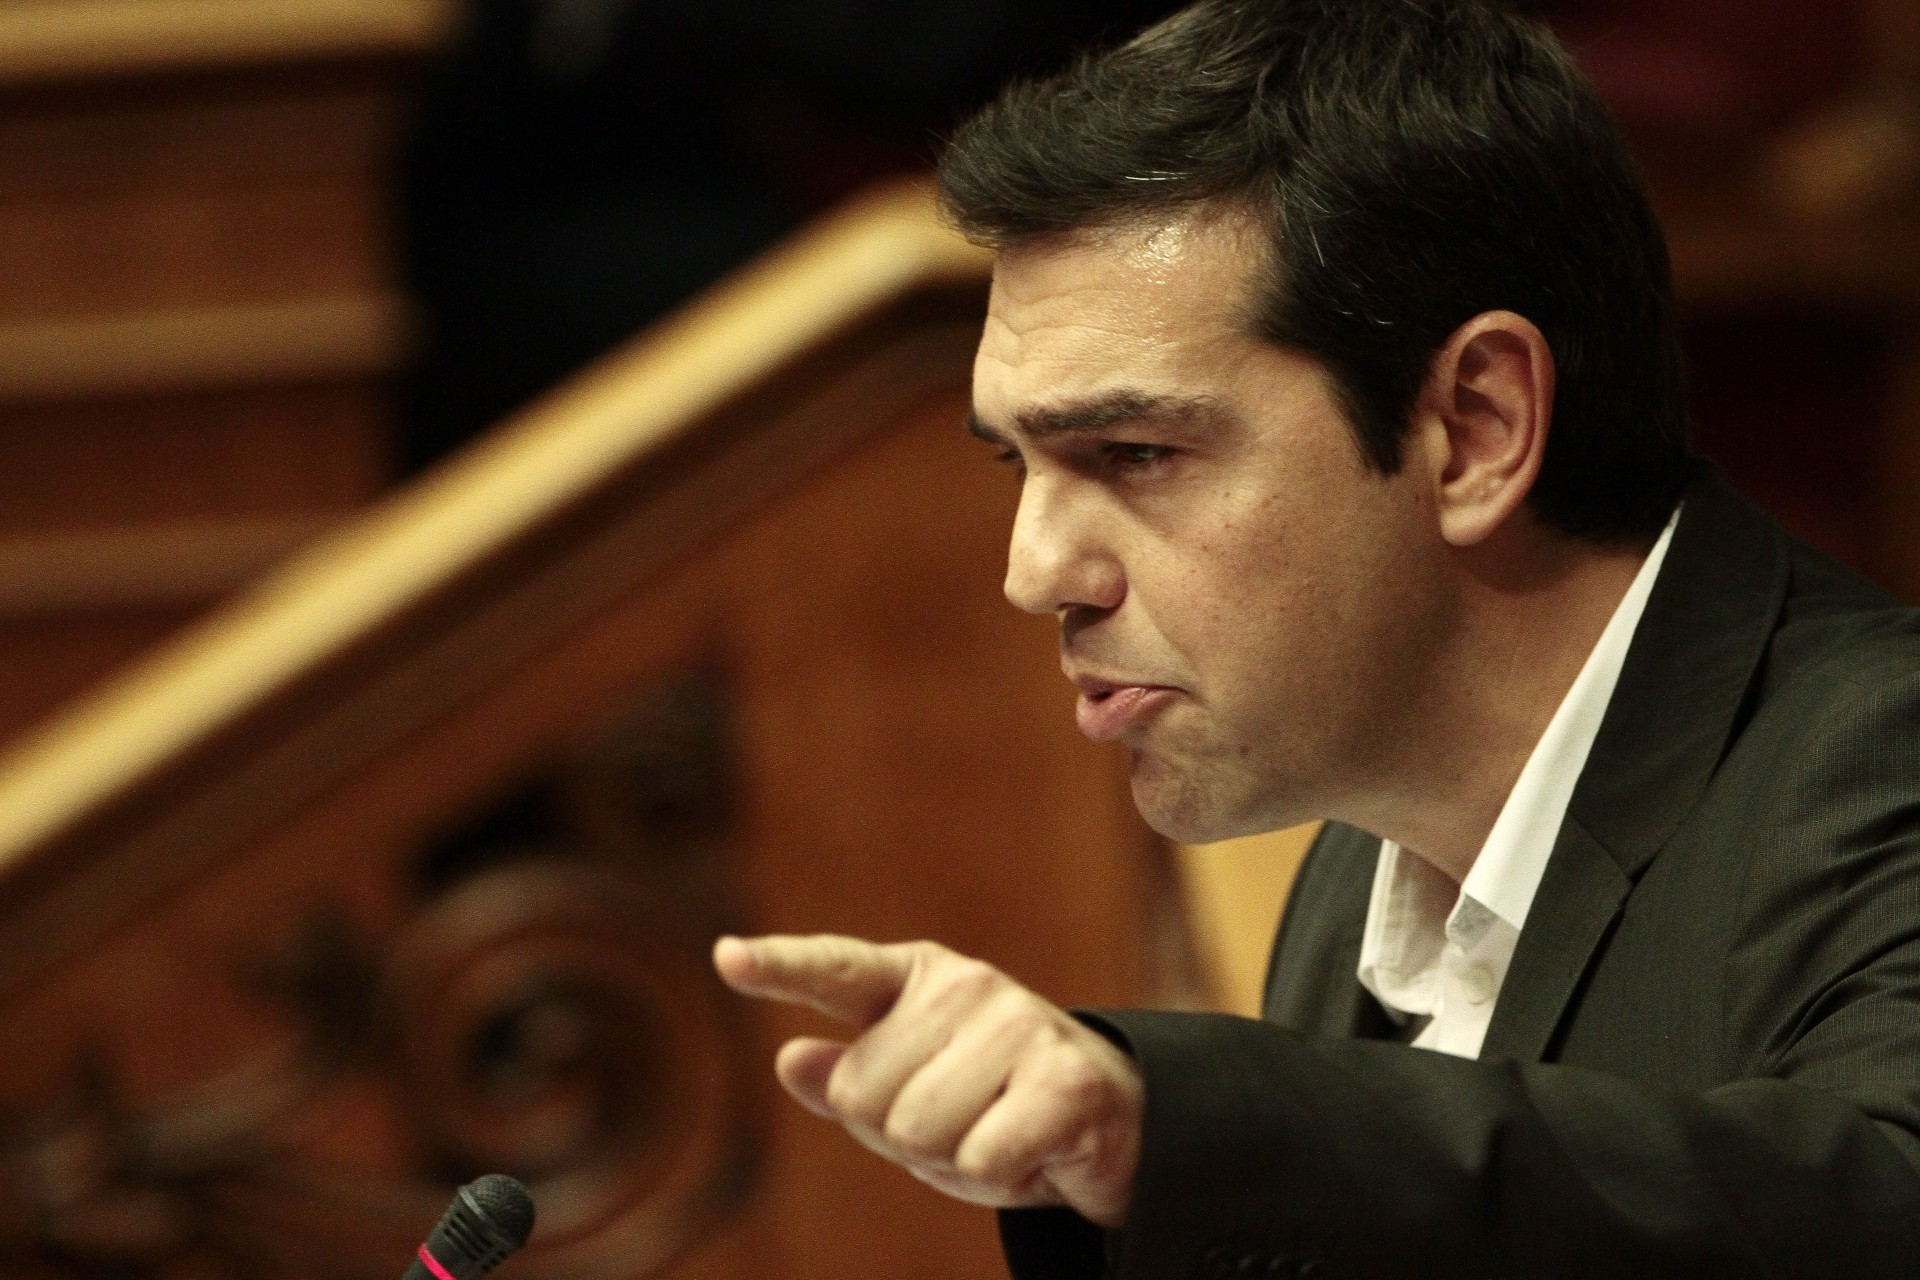 Reject lenders' offer with all our strength, Greek PM says